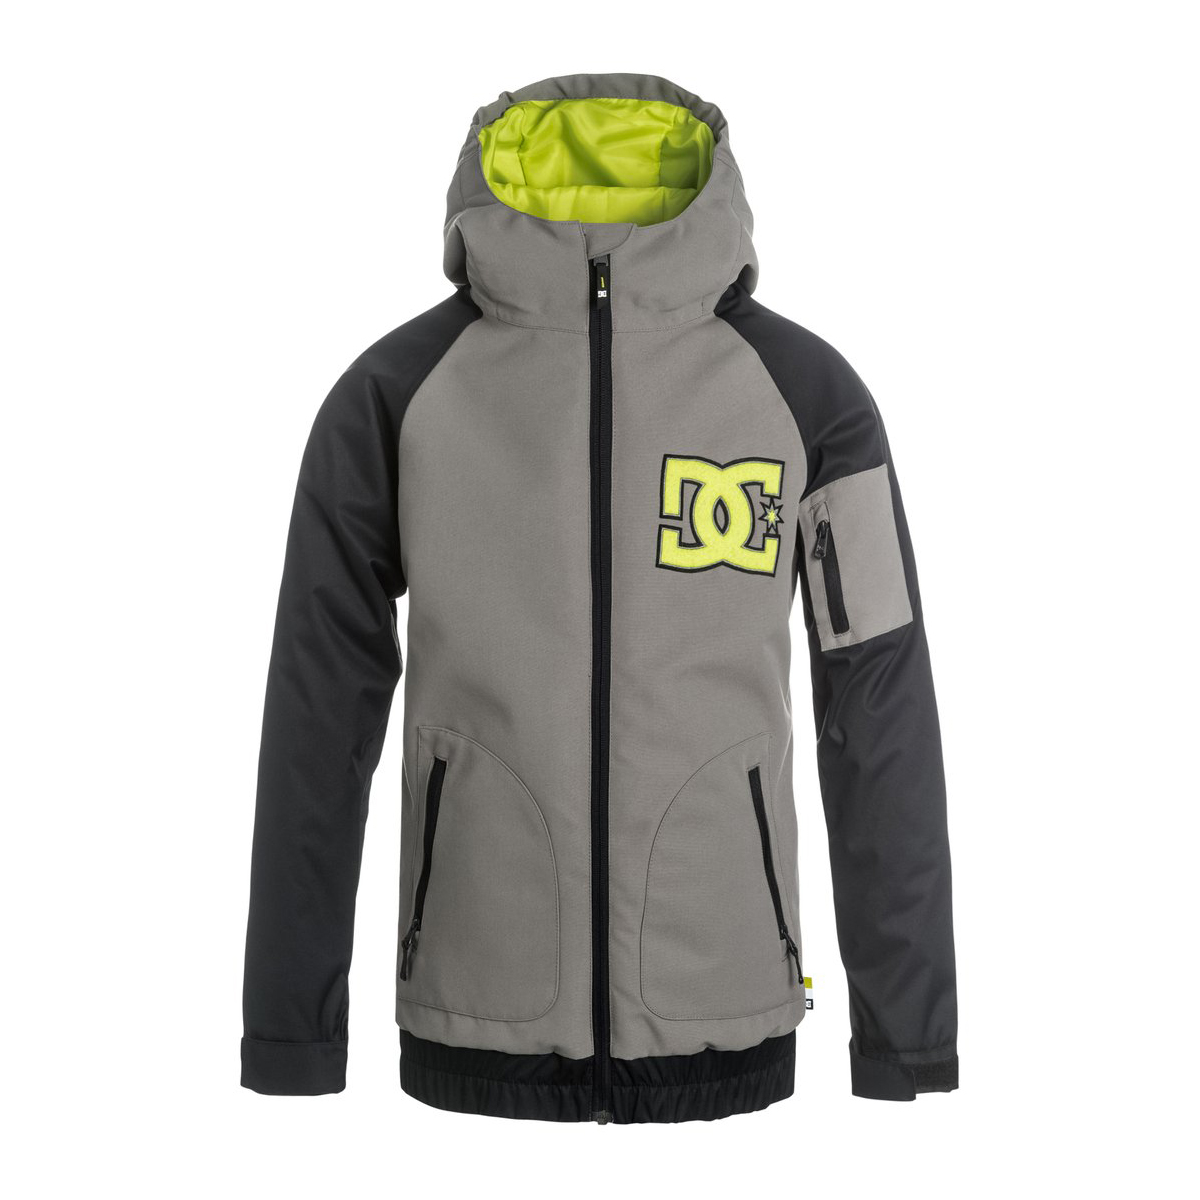 DC Troop Kids Snowjacket